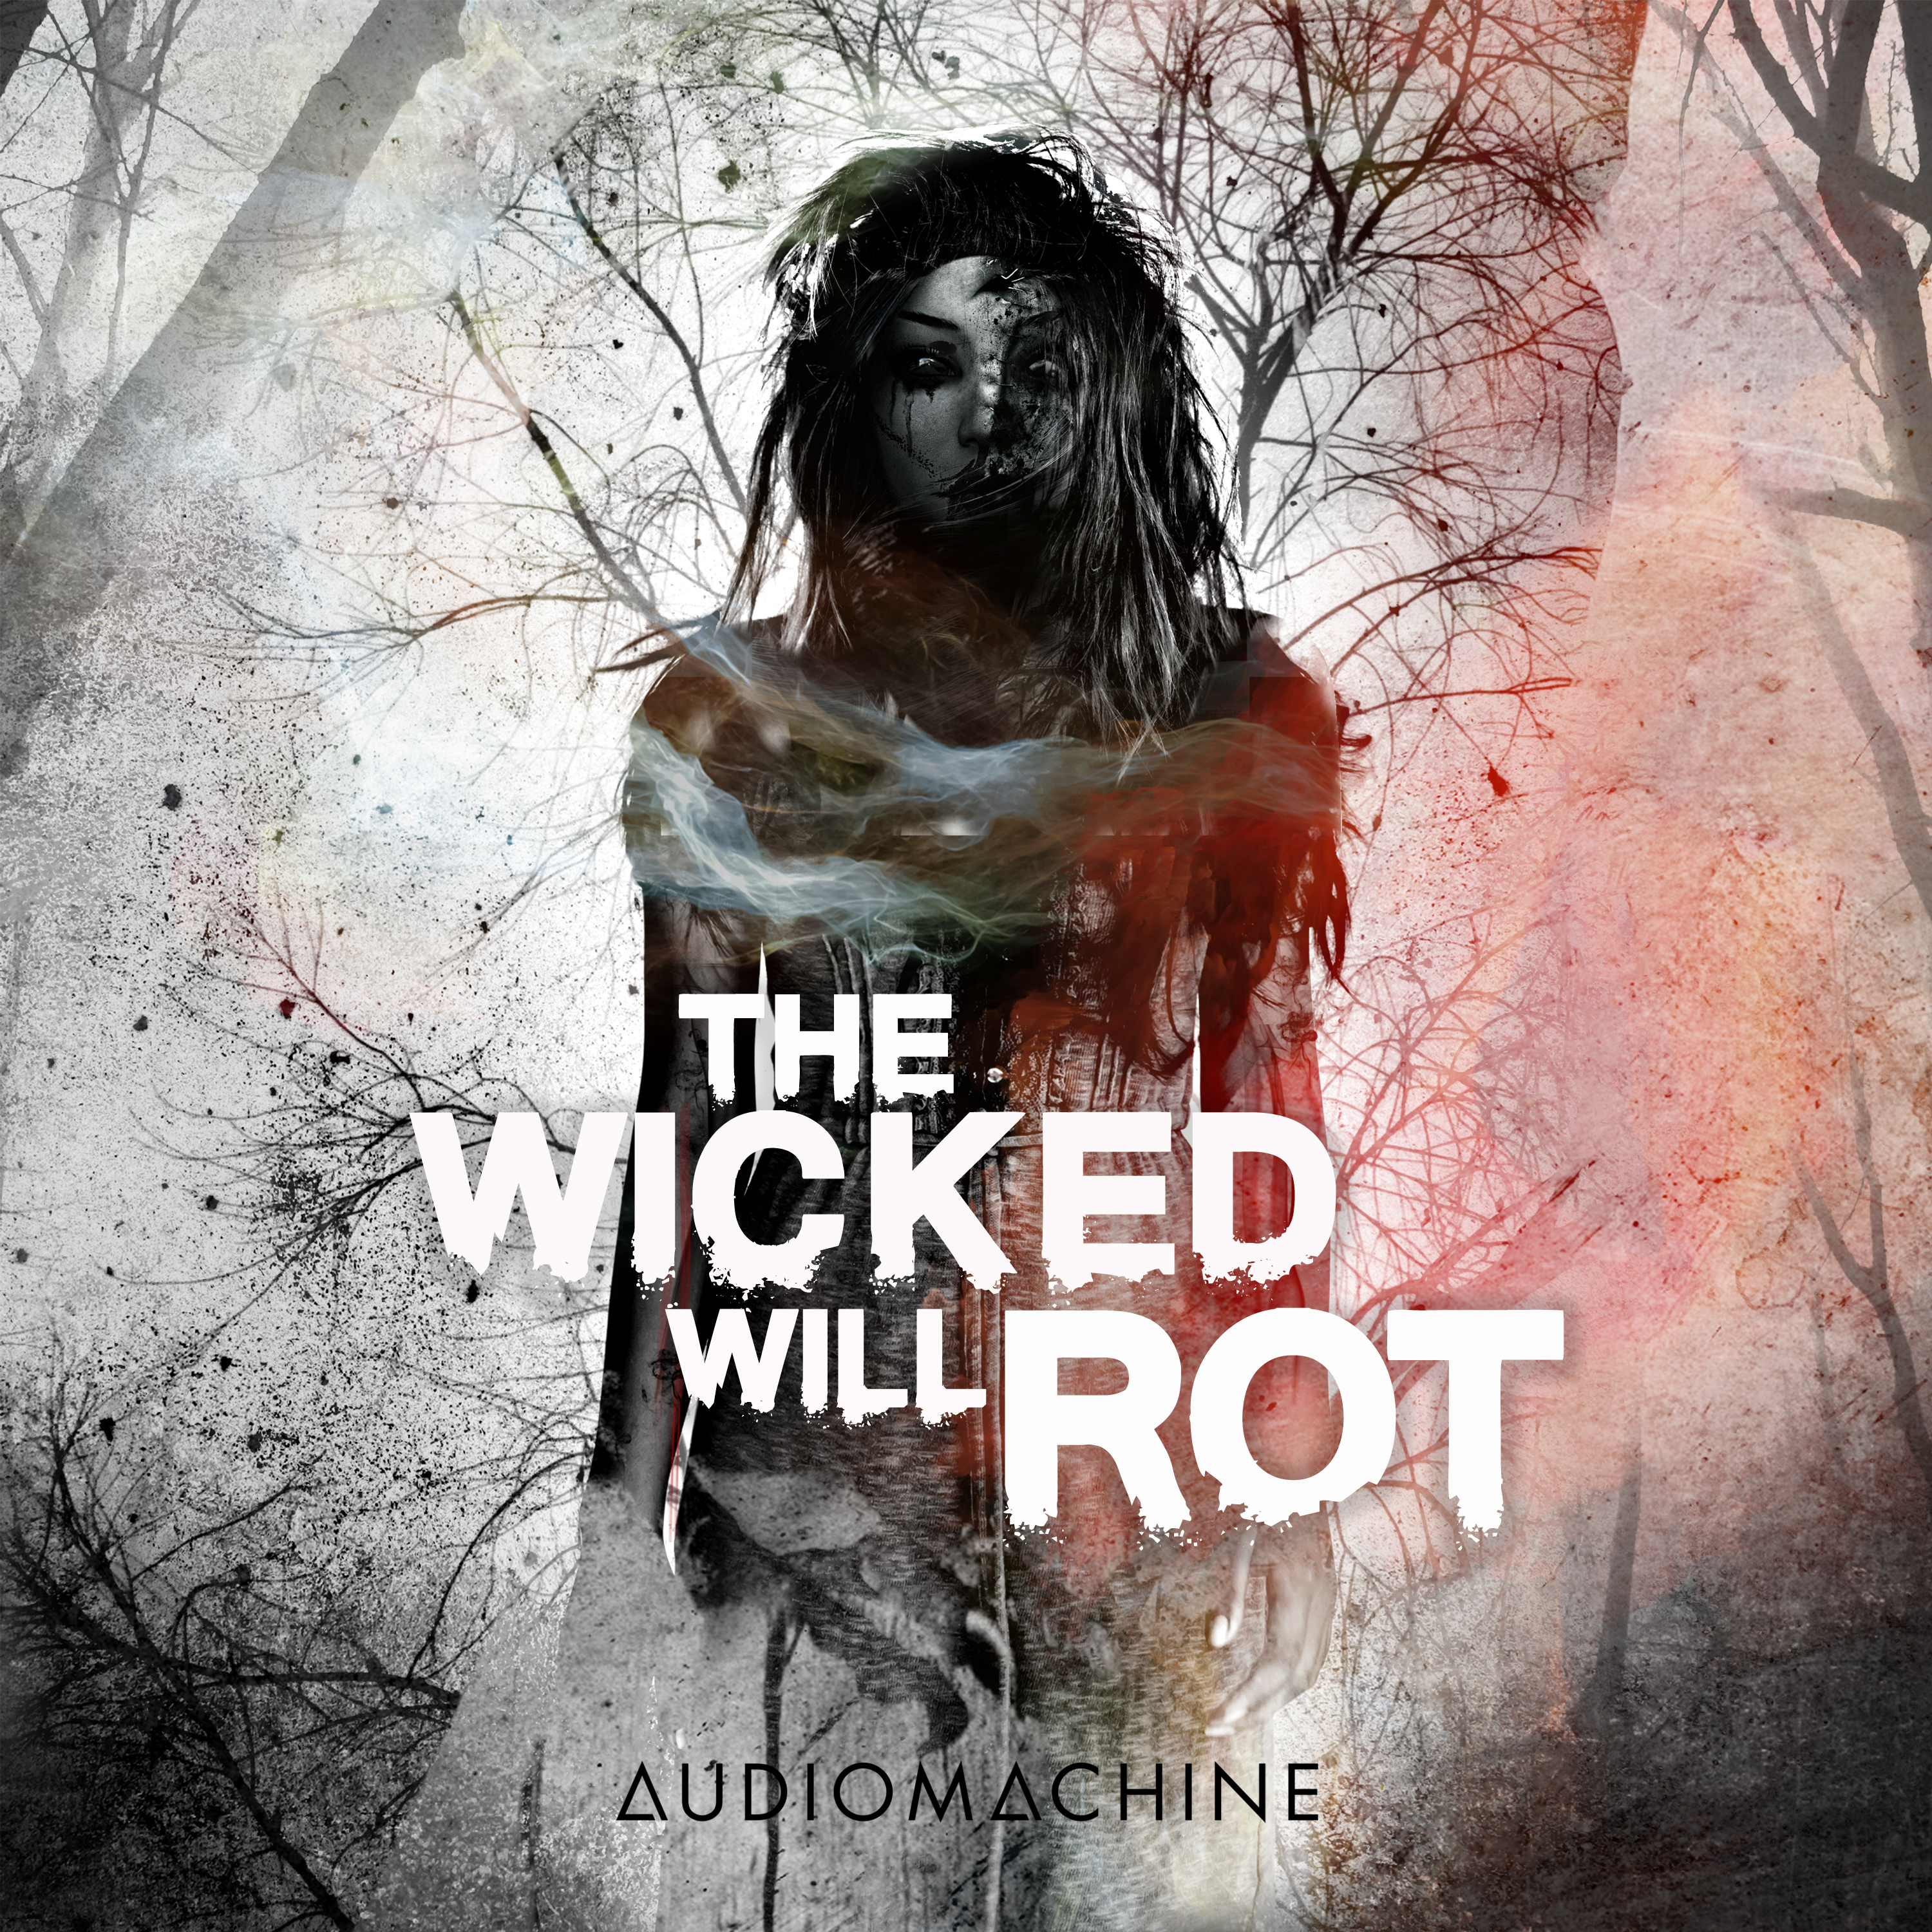 The Wicked Will Rot